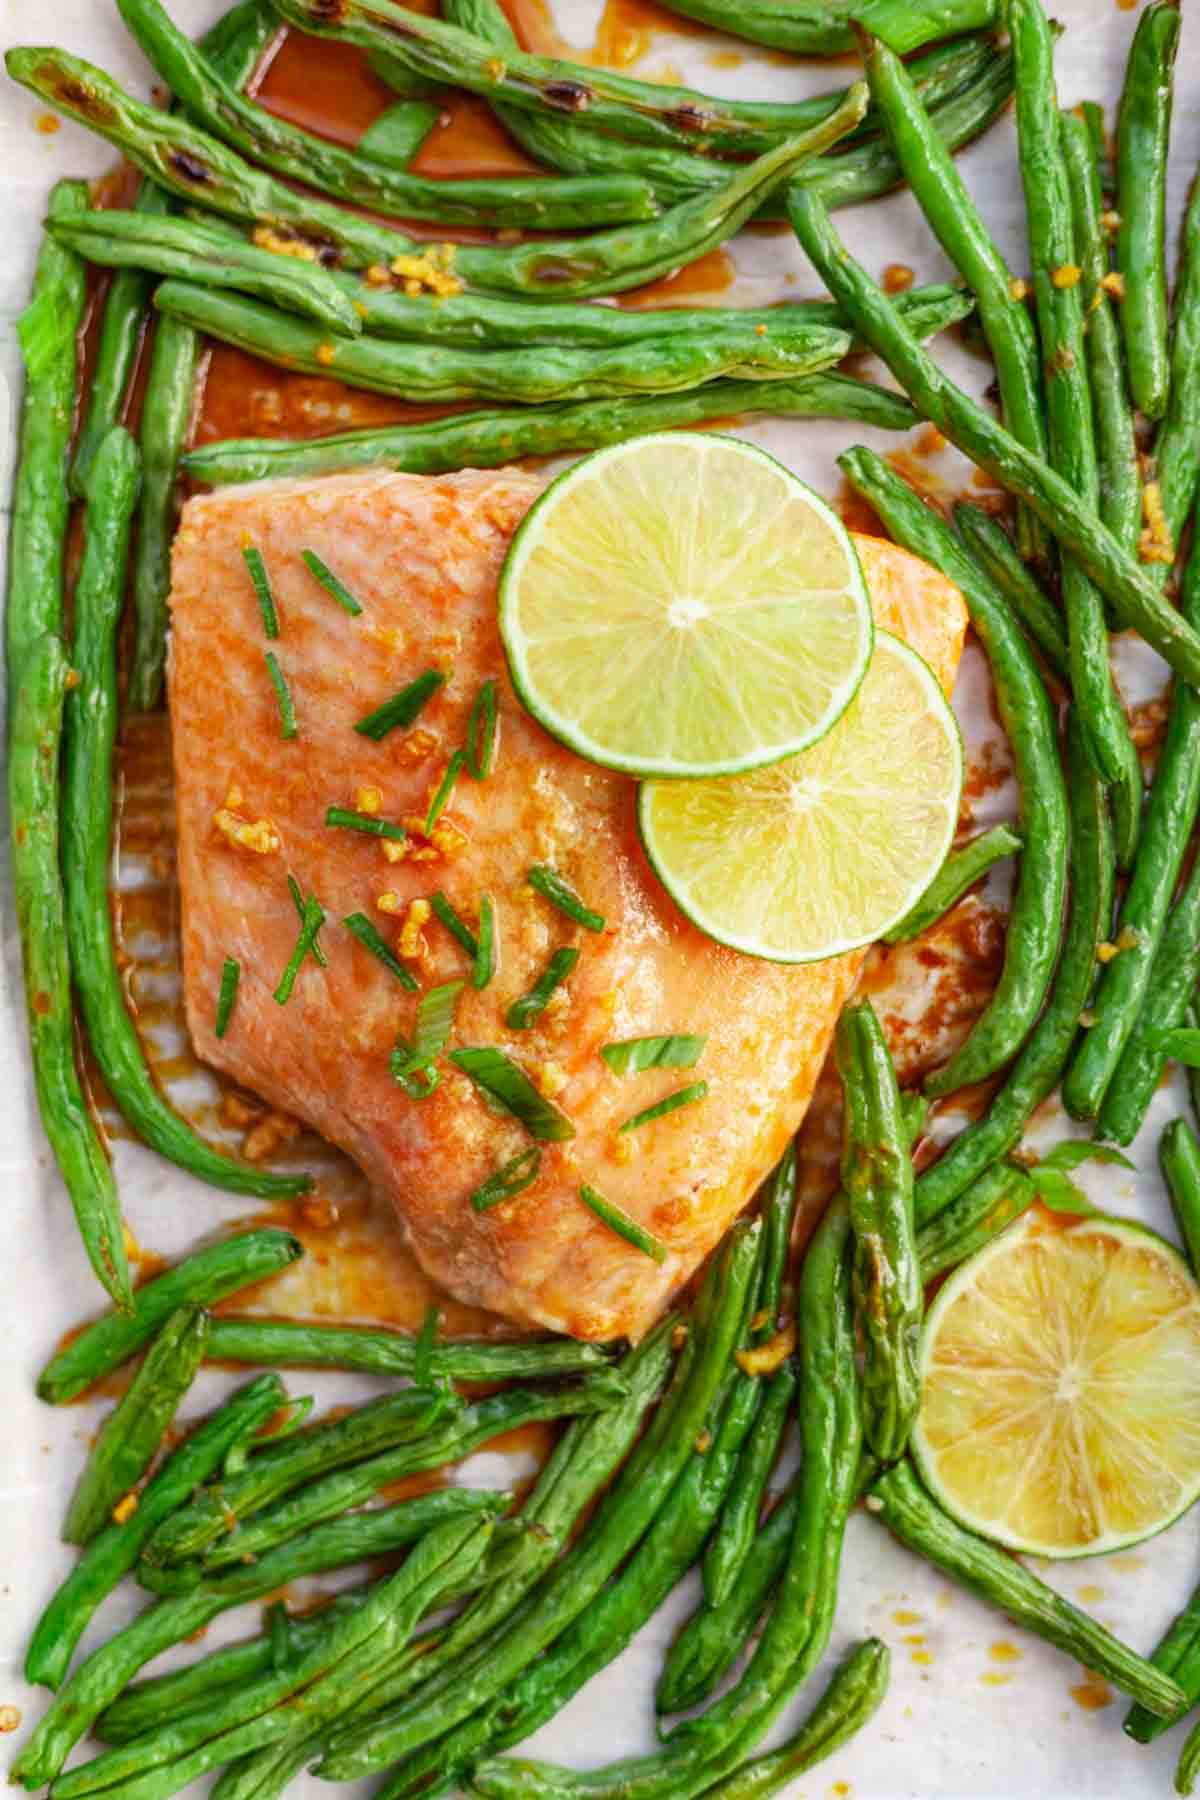 cooked salmon and green beans on a sheet-pan